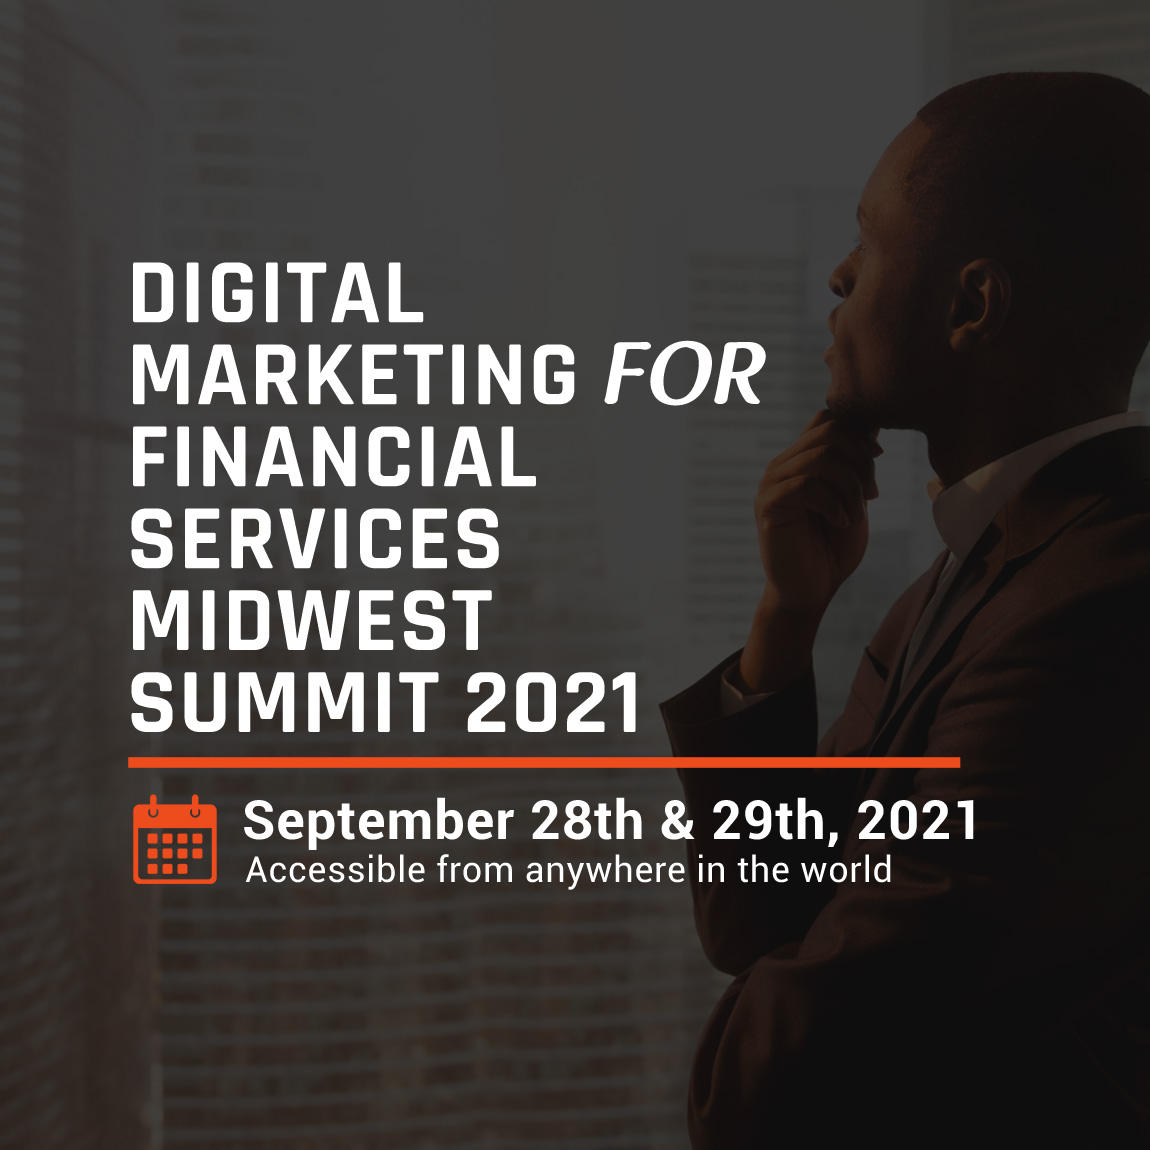 Digital Marketing for Financial Services Midwest